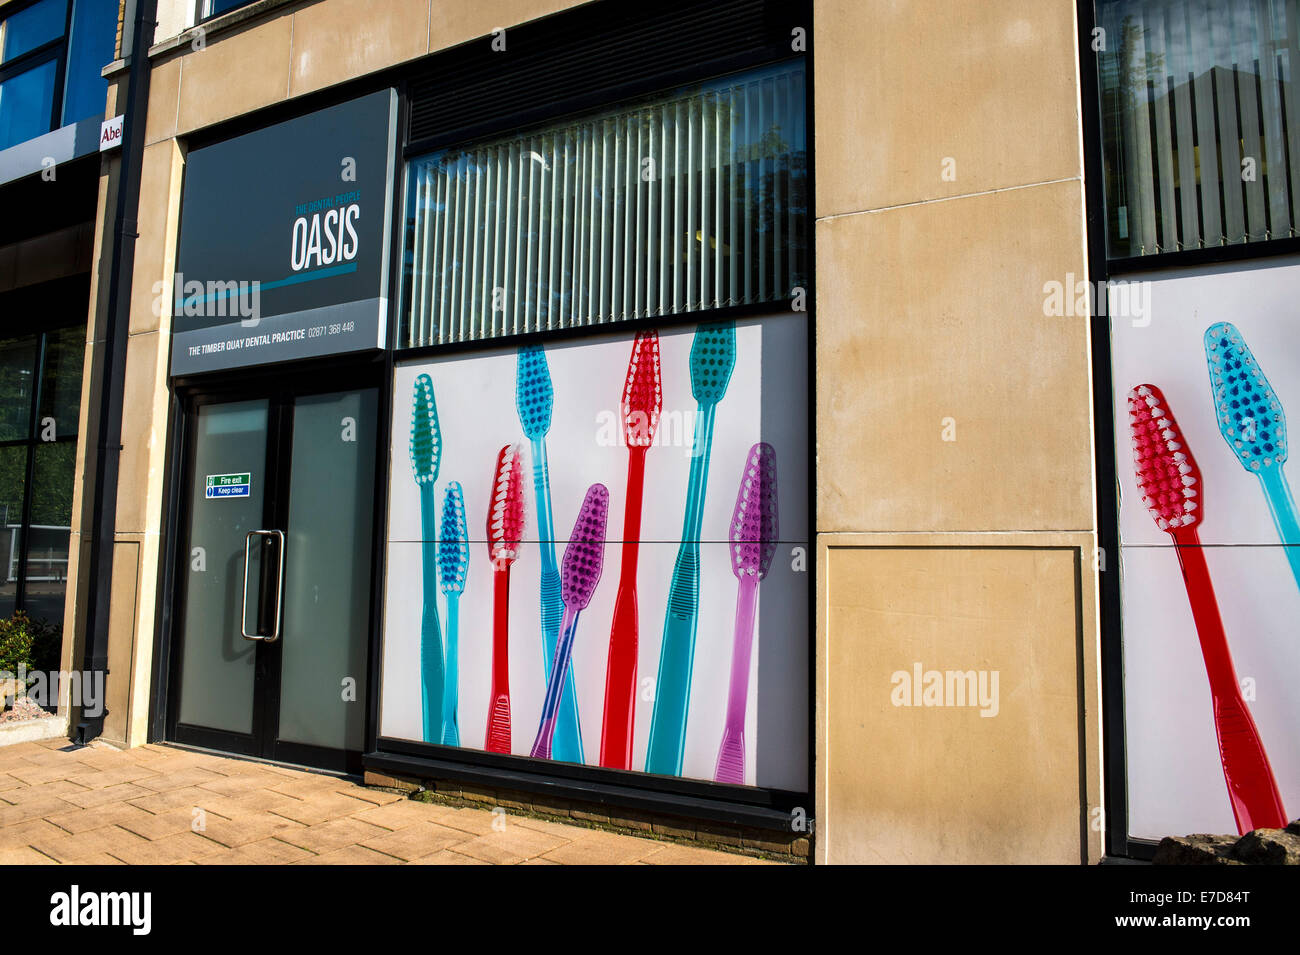 Large illustration of coloured tooth brushes on exterior of dentistry pracrice, Derry, Londonderry, Northern Ireland. - Stock Image